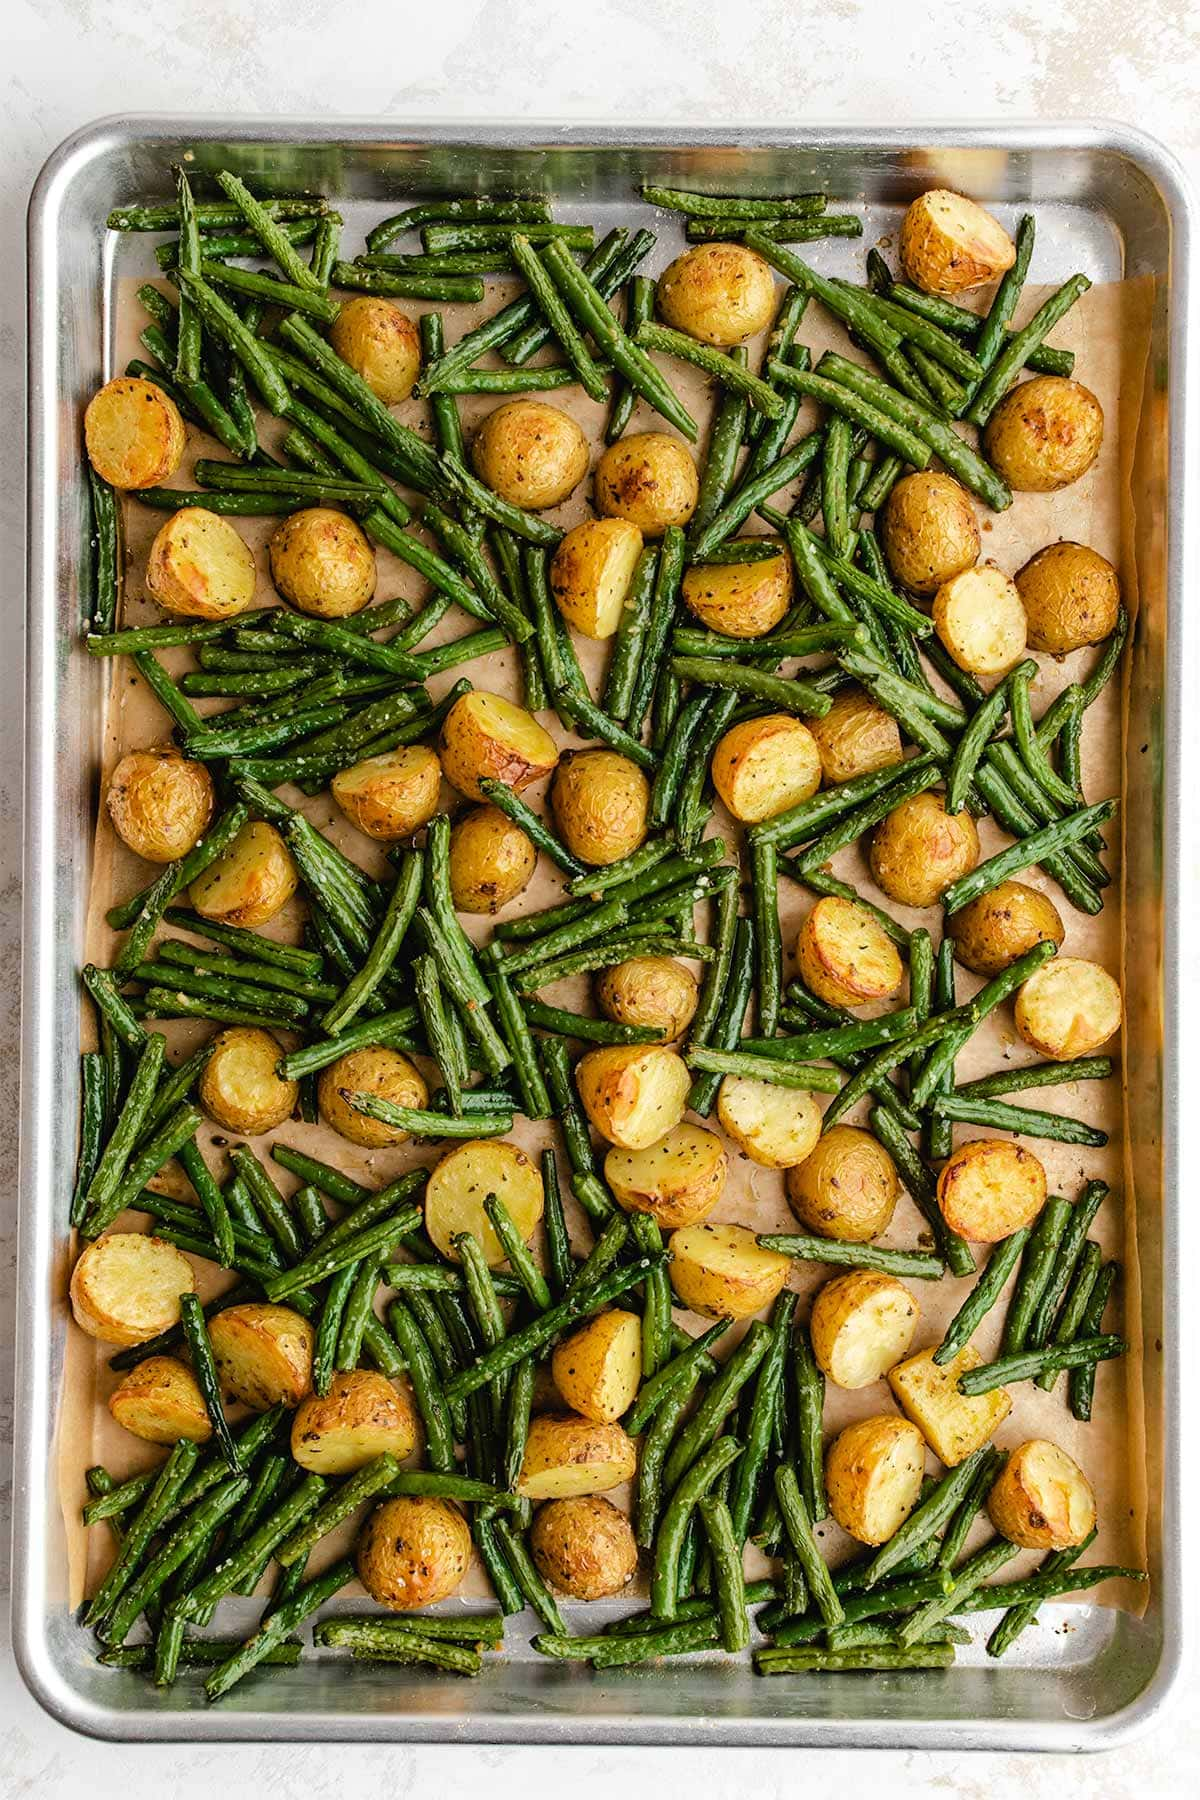 Roasted potatoes and green beans on a parchment-lined baking sheet, viewed from overhead.